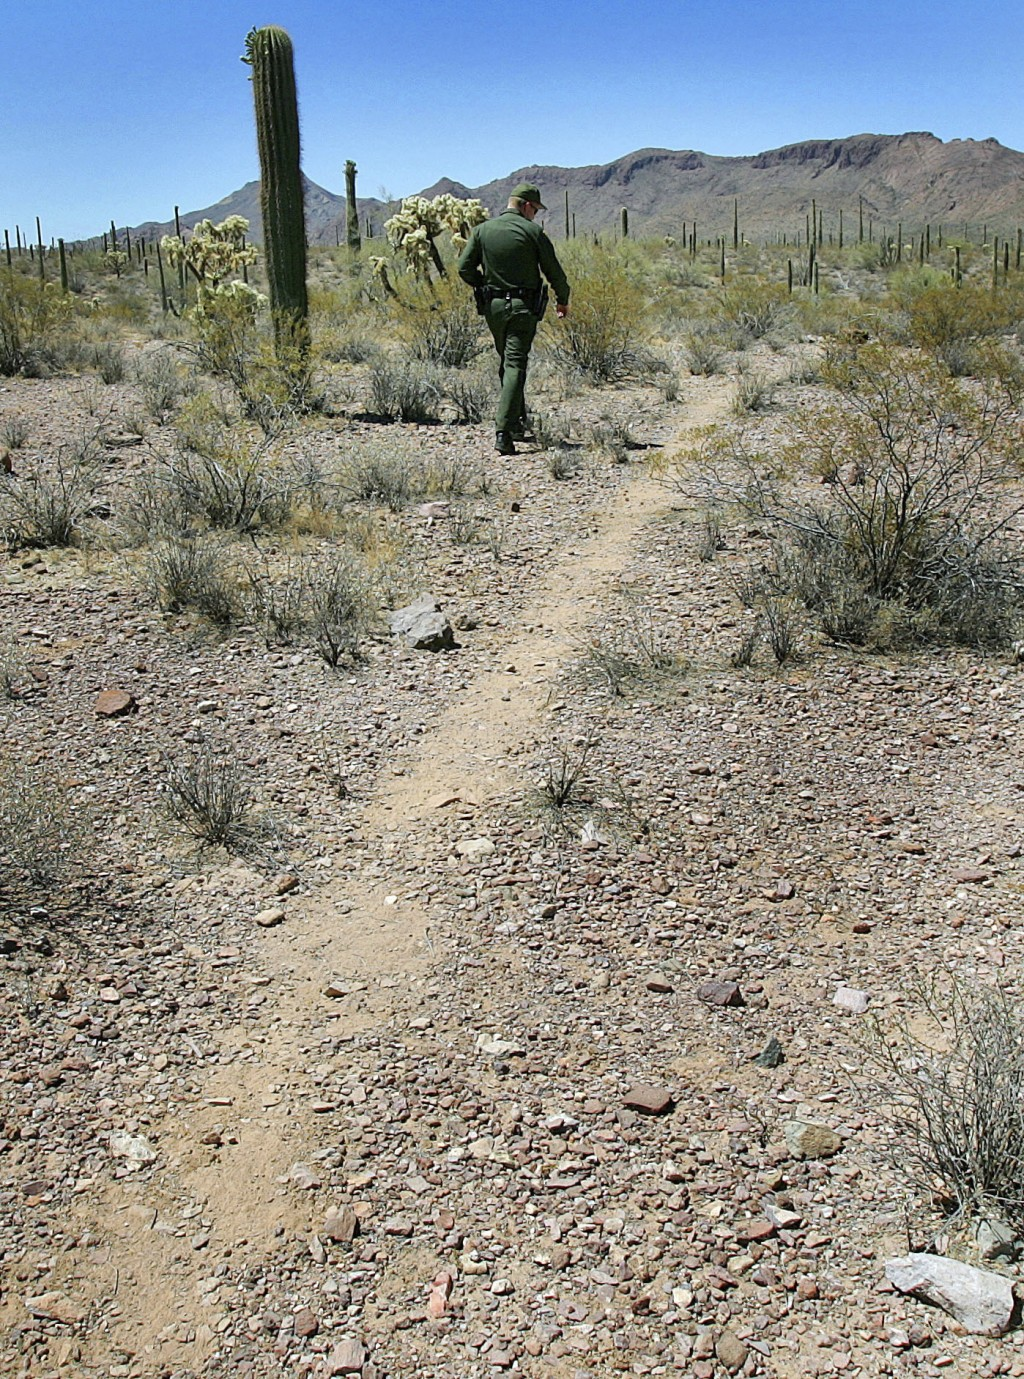 FILE - In this May 24, 2006, file photo, U.S. Border Patrol Senior Agent Sean King patrols a trail in Organ Pipe Cactus National Monument near Lukevil